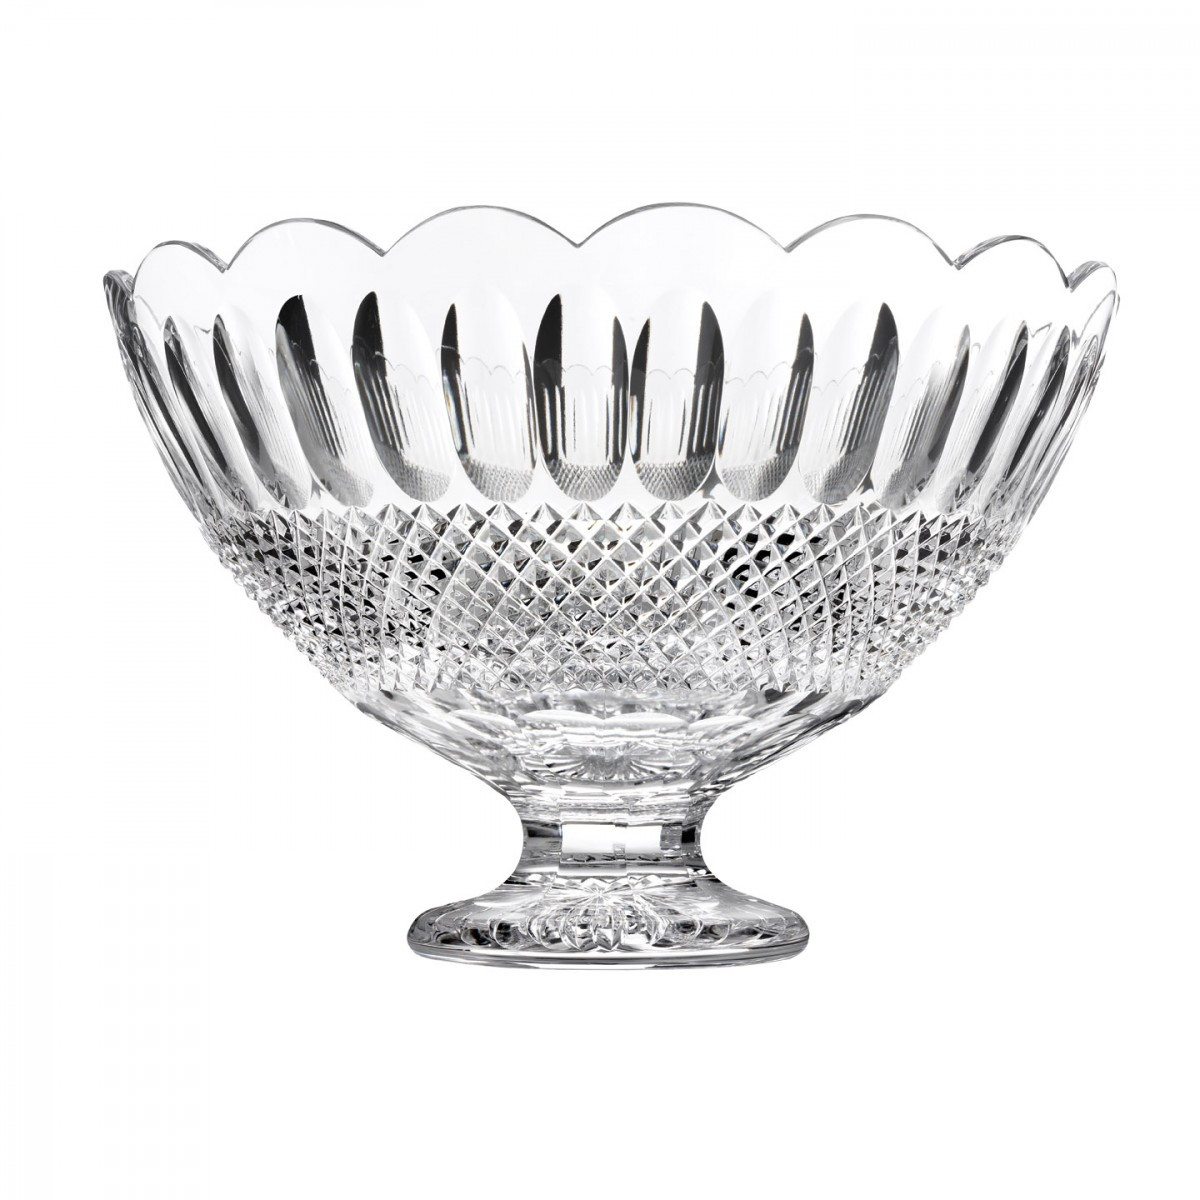 Retired Waterford Crystal Vase Patterns Of Colleen 60th Anniversary 12in Centerpiece Bowl Discontinued In Colleen 60th Anniversary 12in Centerpiece Bowl Discontinued